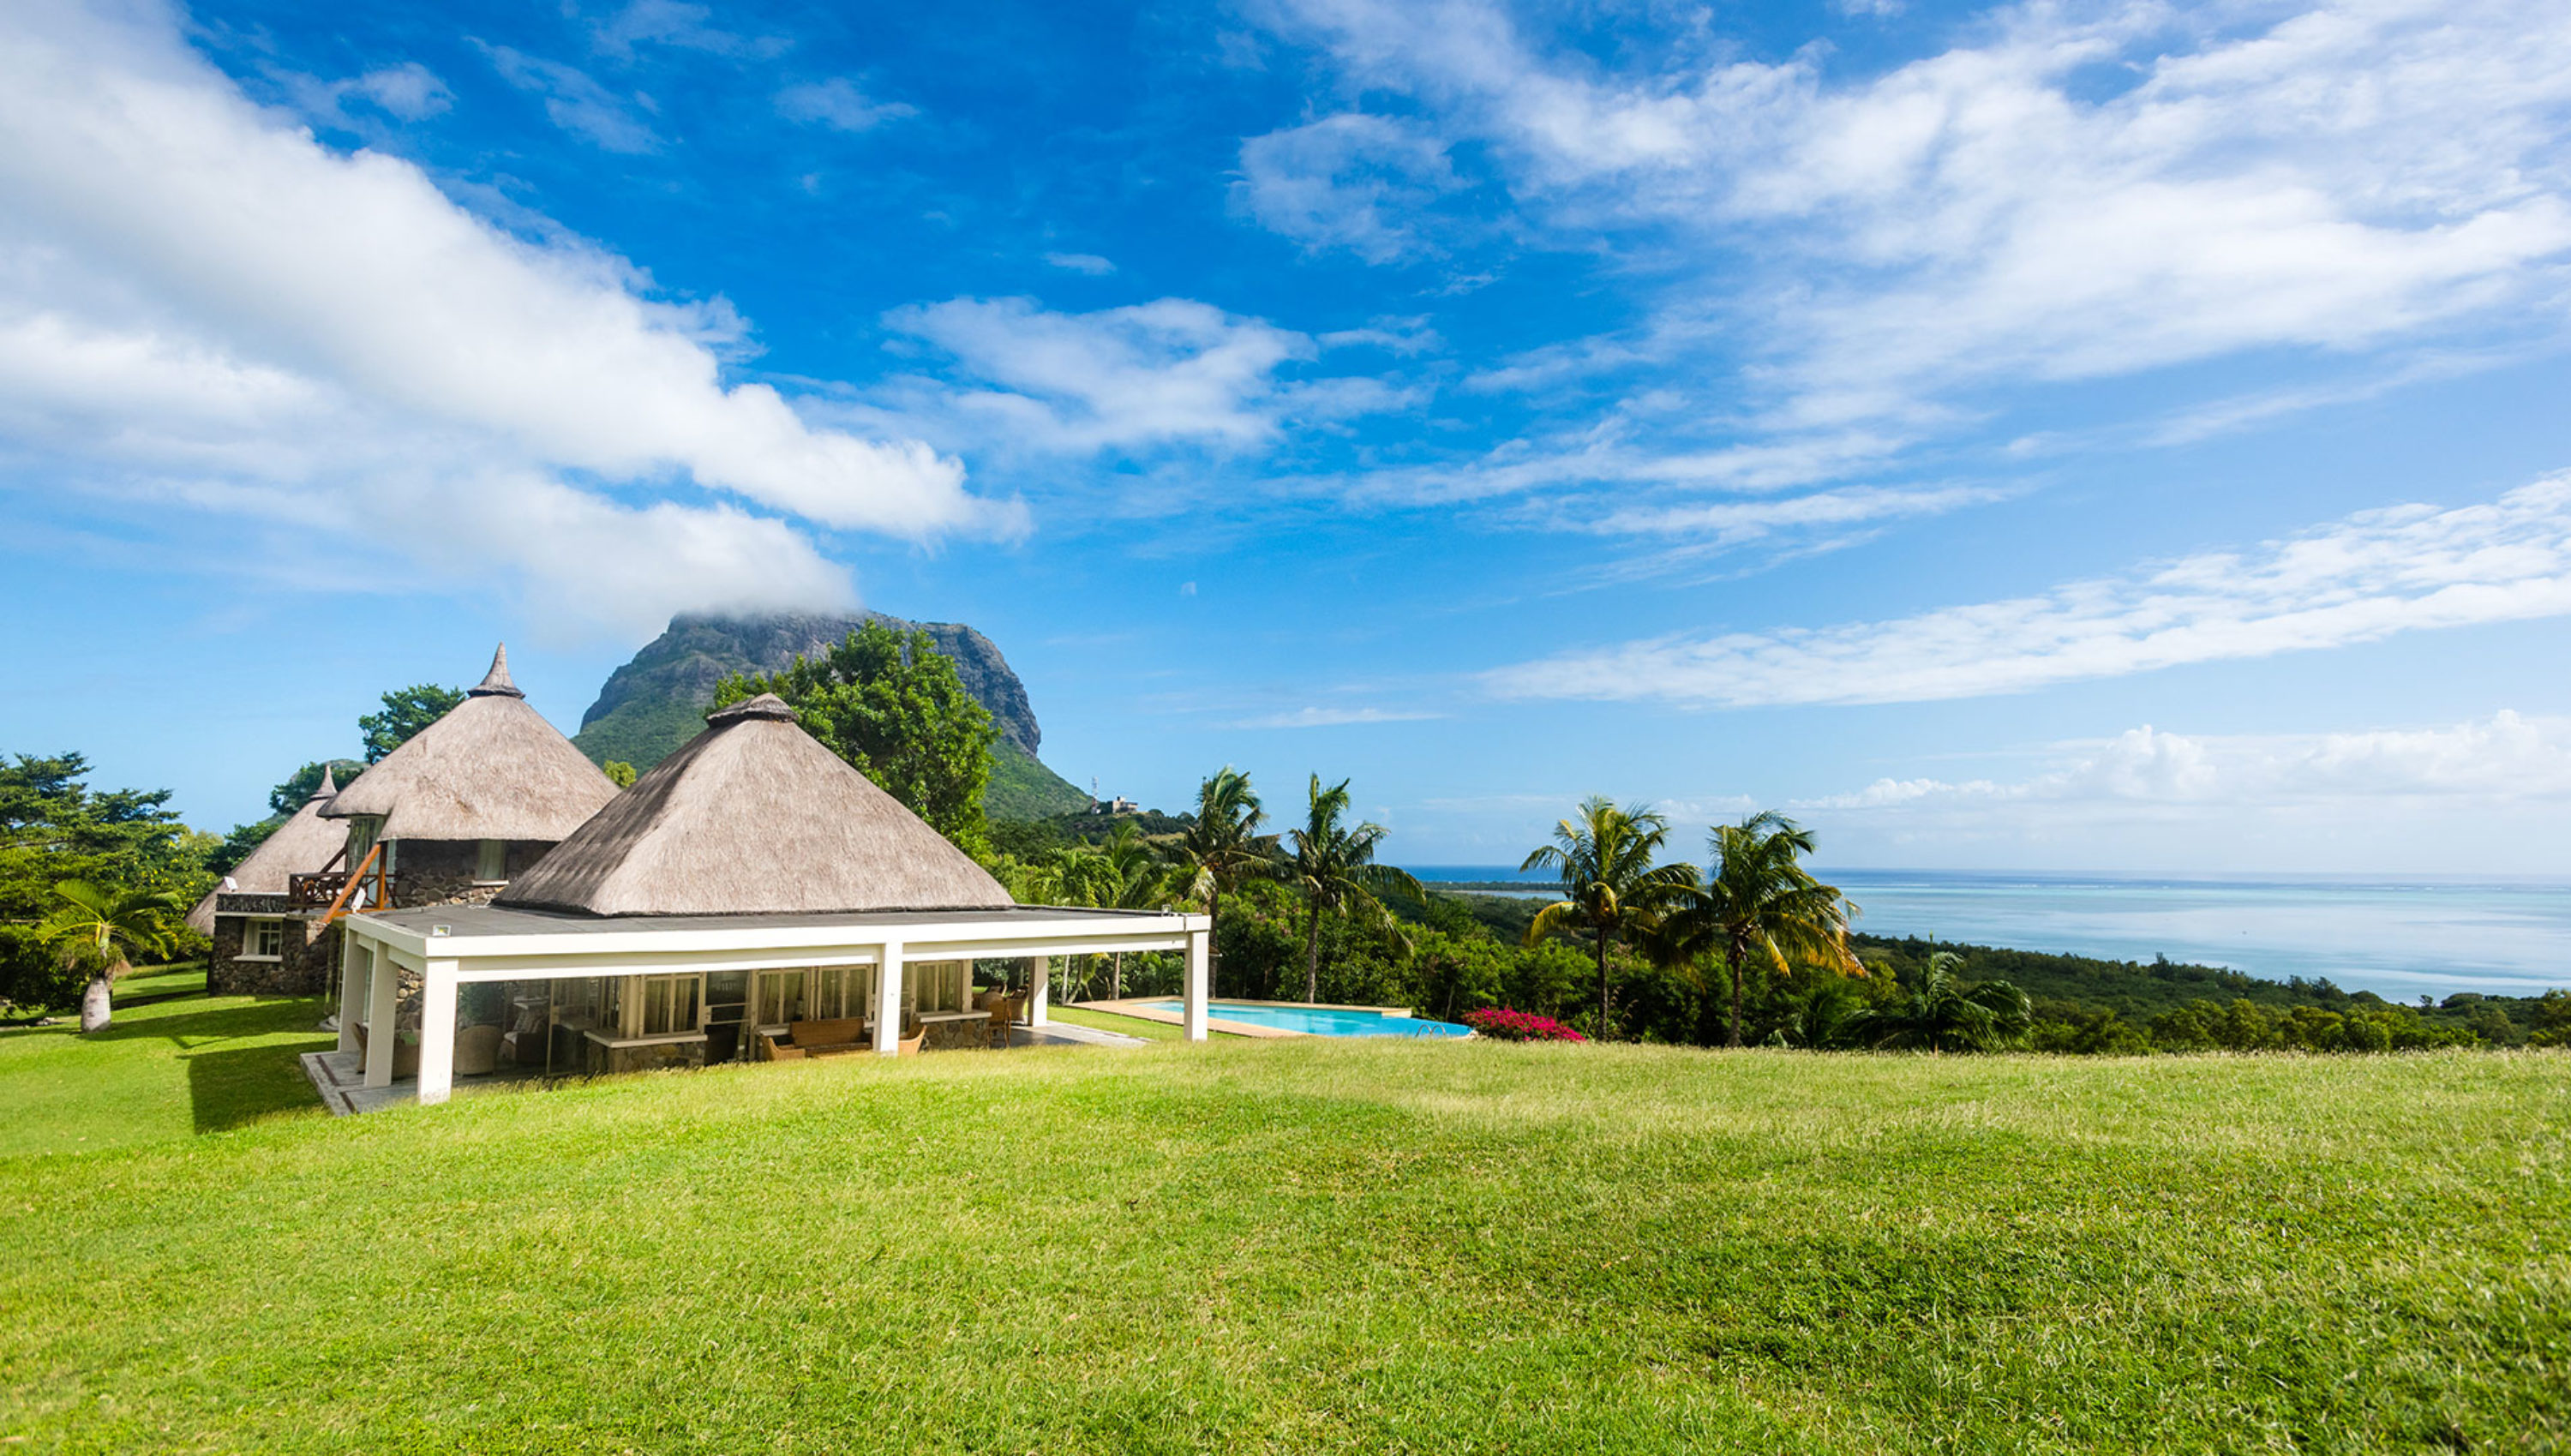 Le petit morne lodge